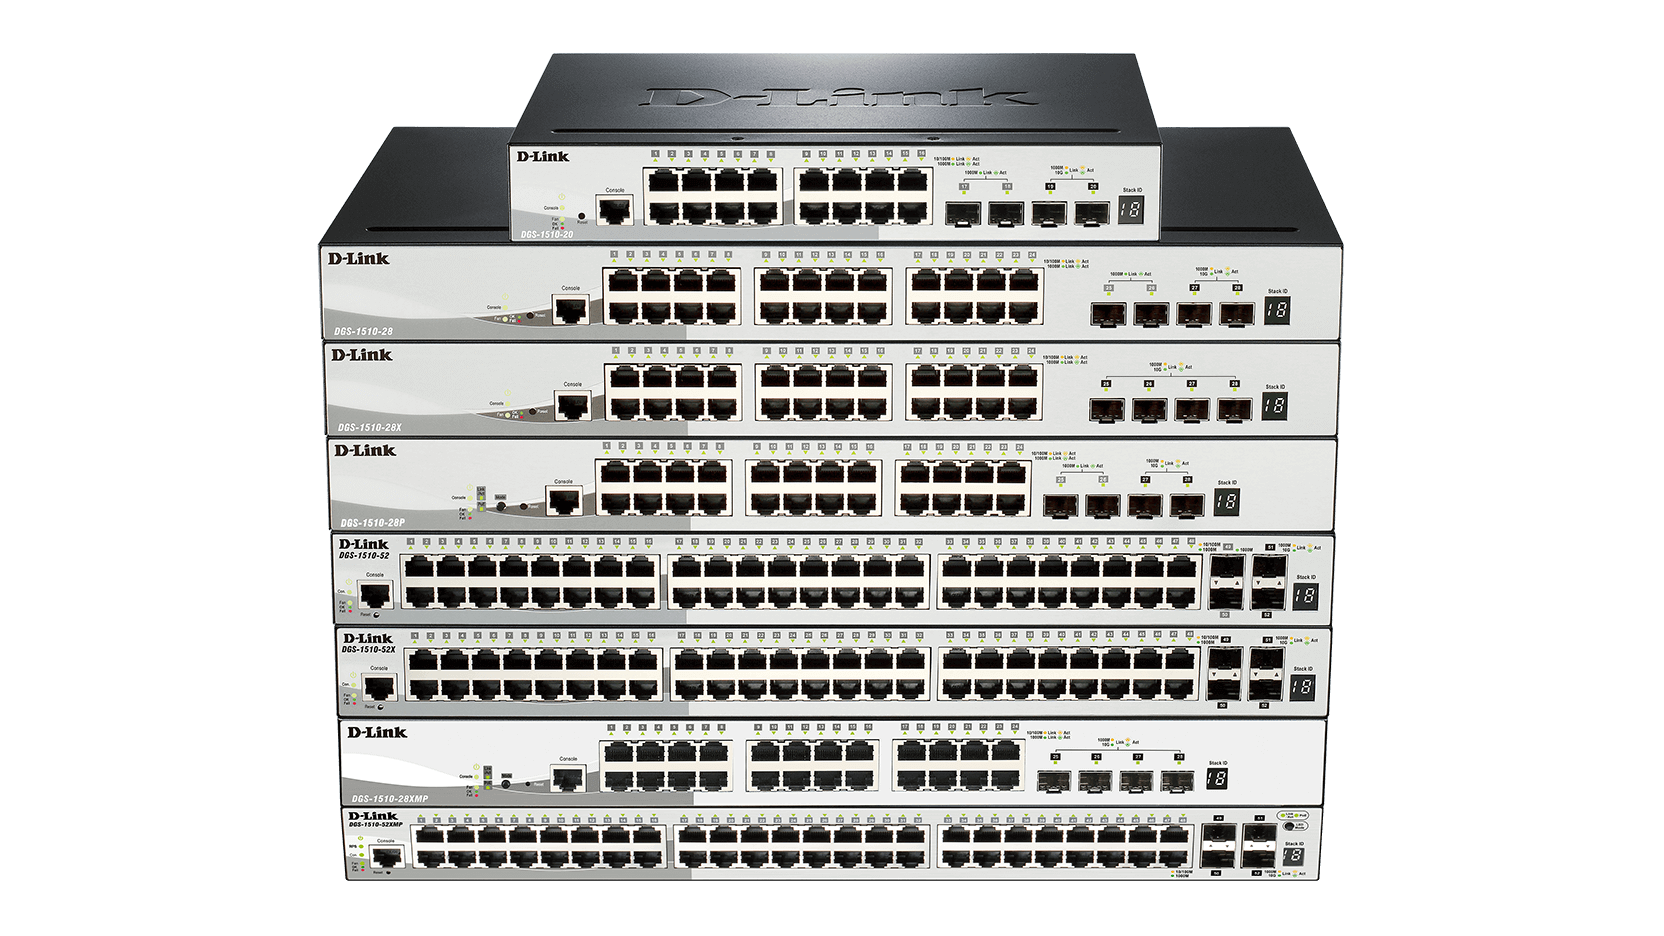 DGS-1510 Stackable Smart Managed Gigabit Switches | D-Link UK